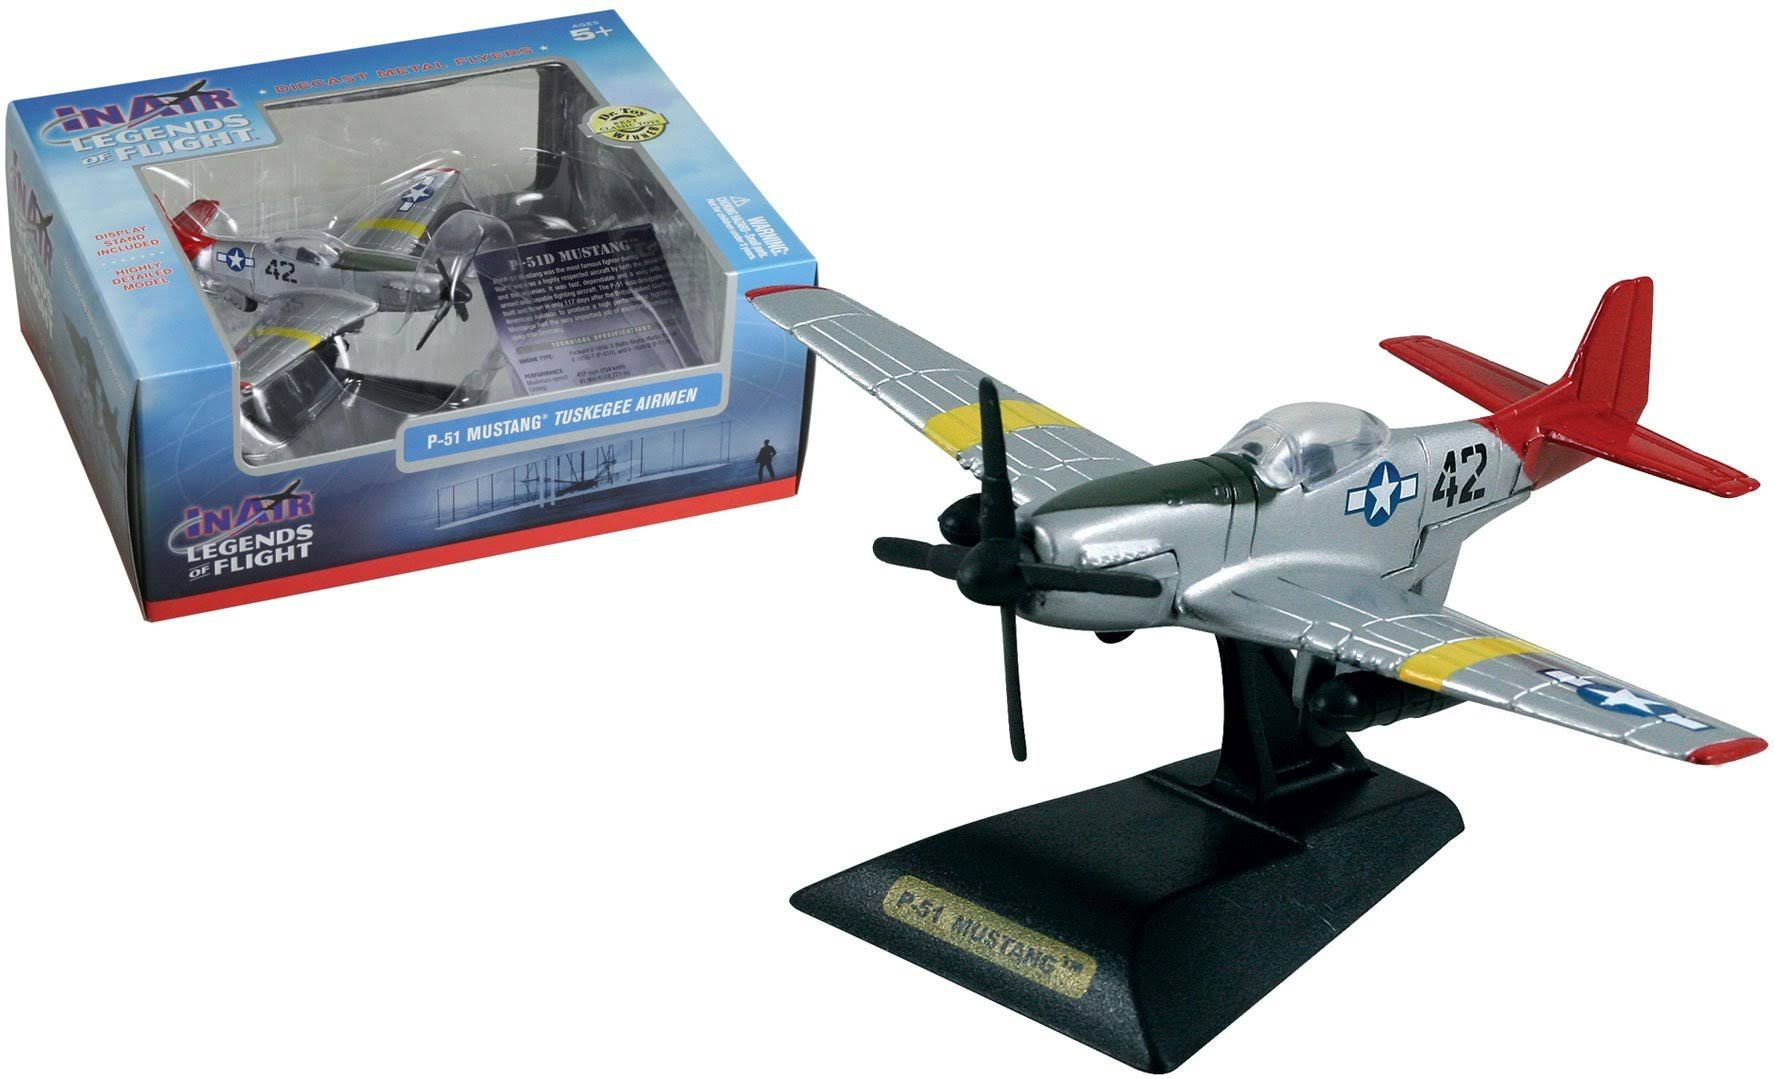 Wow Toyz in Air Legends of Flight P 51 Mustang Tuskegee Airmen Die Cast Vehicle